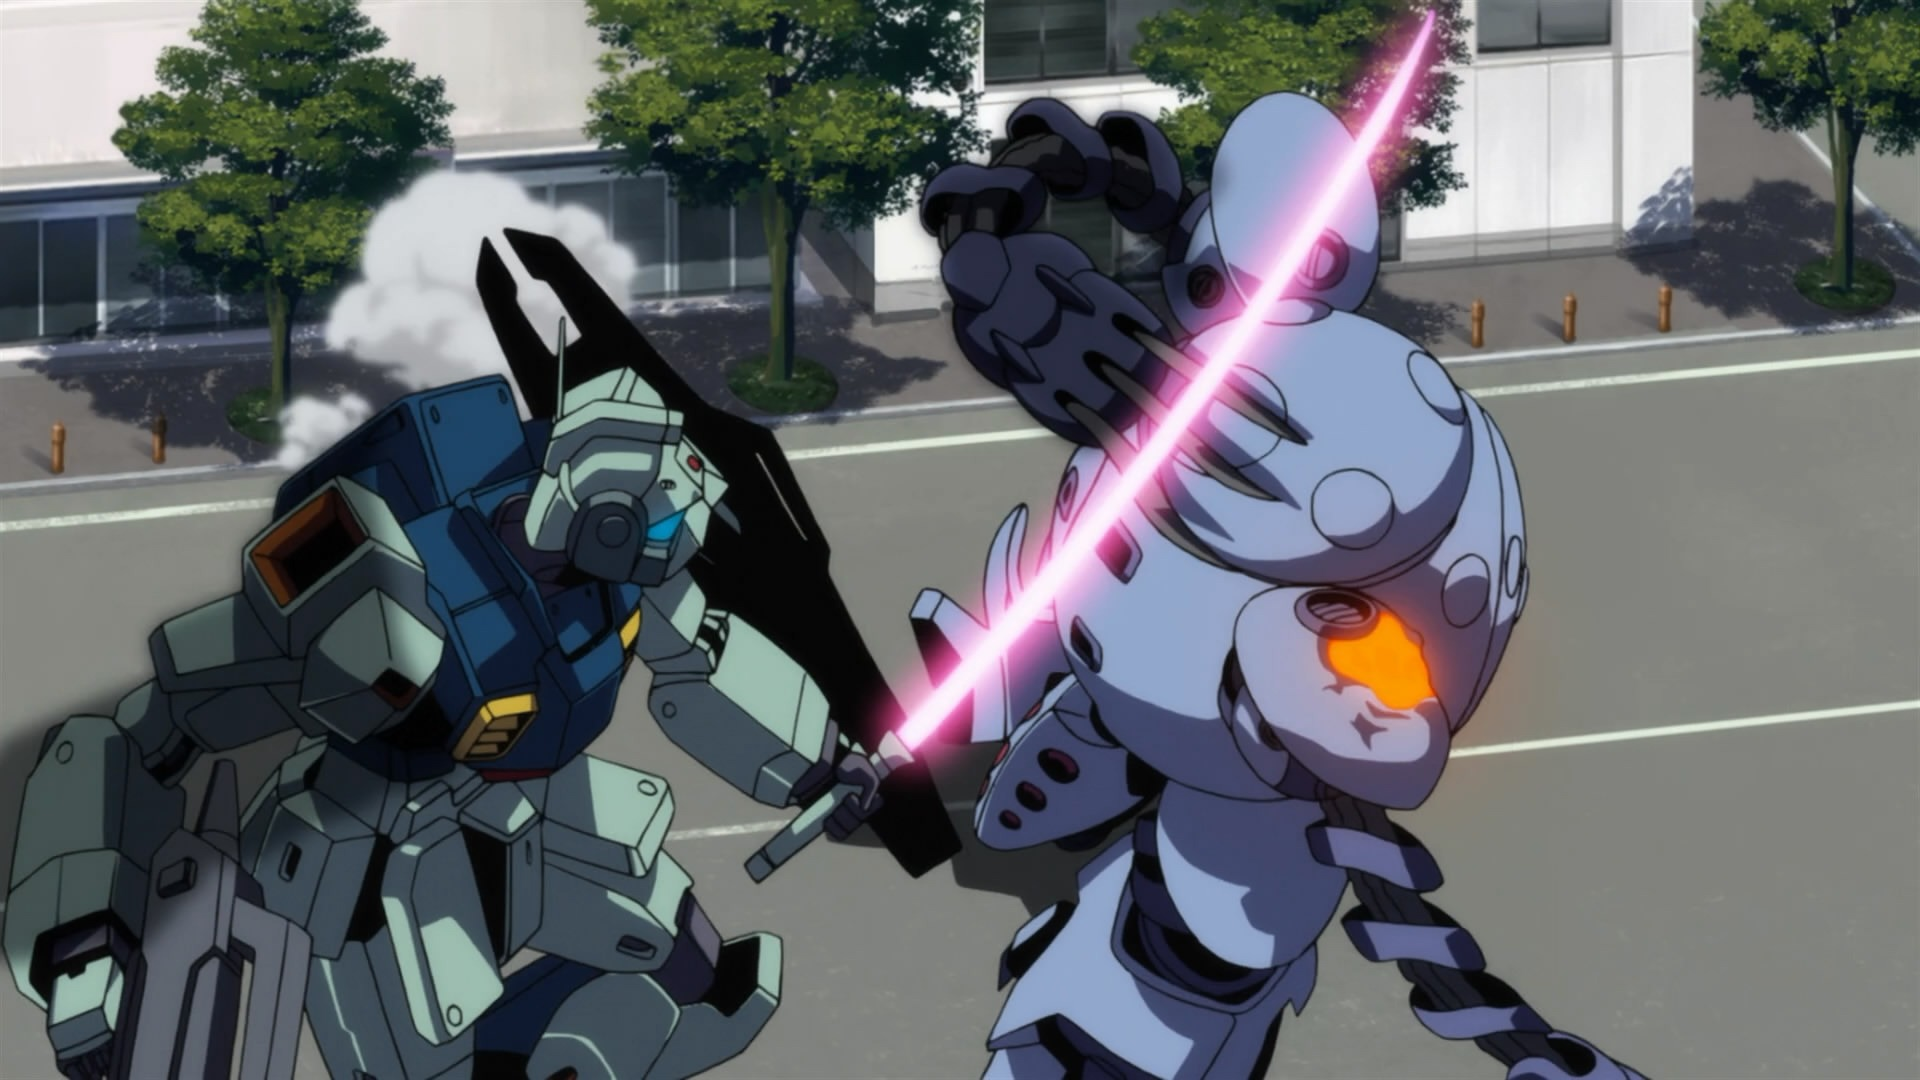 unicorn gundam first fight in a relationship